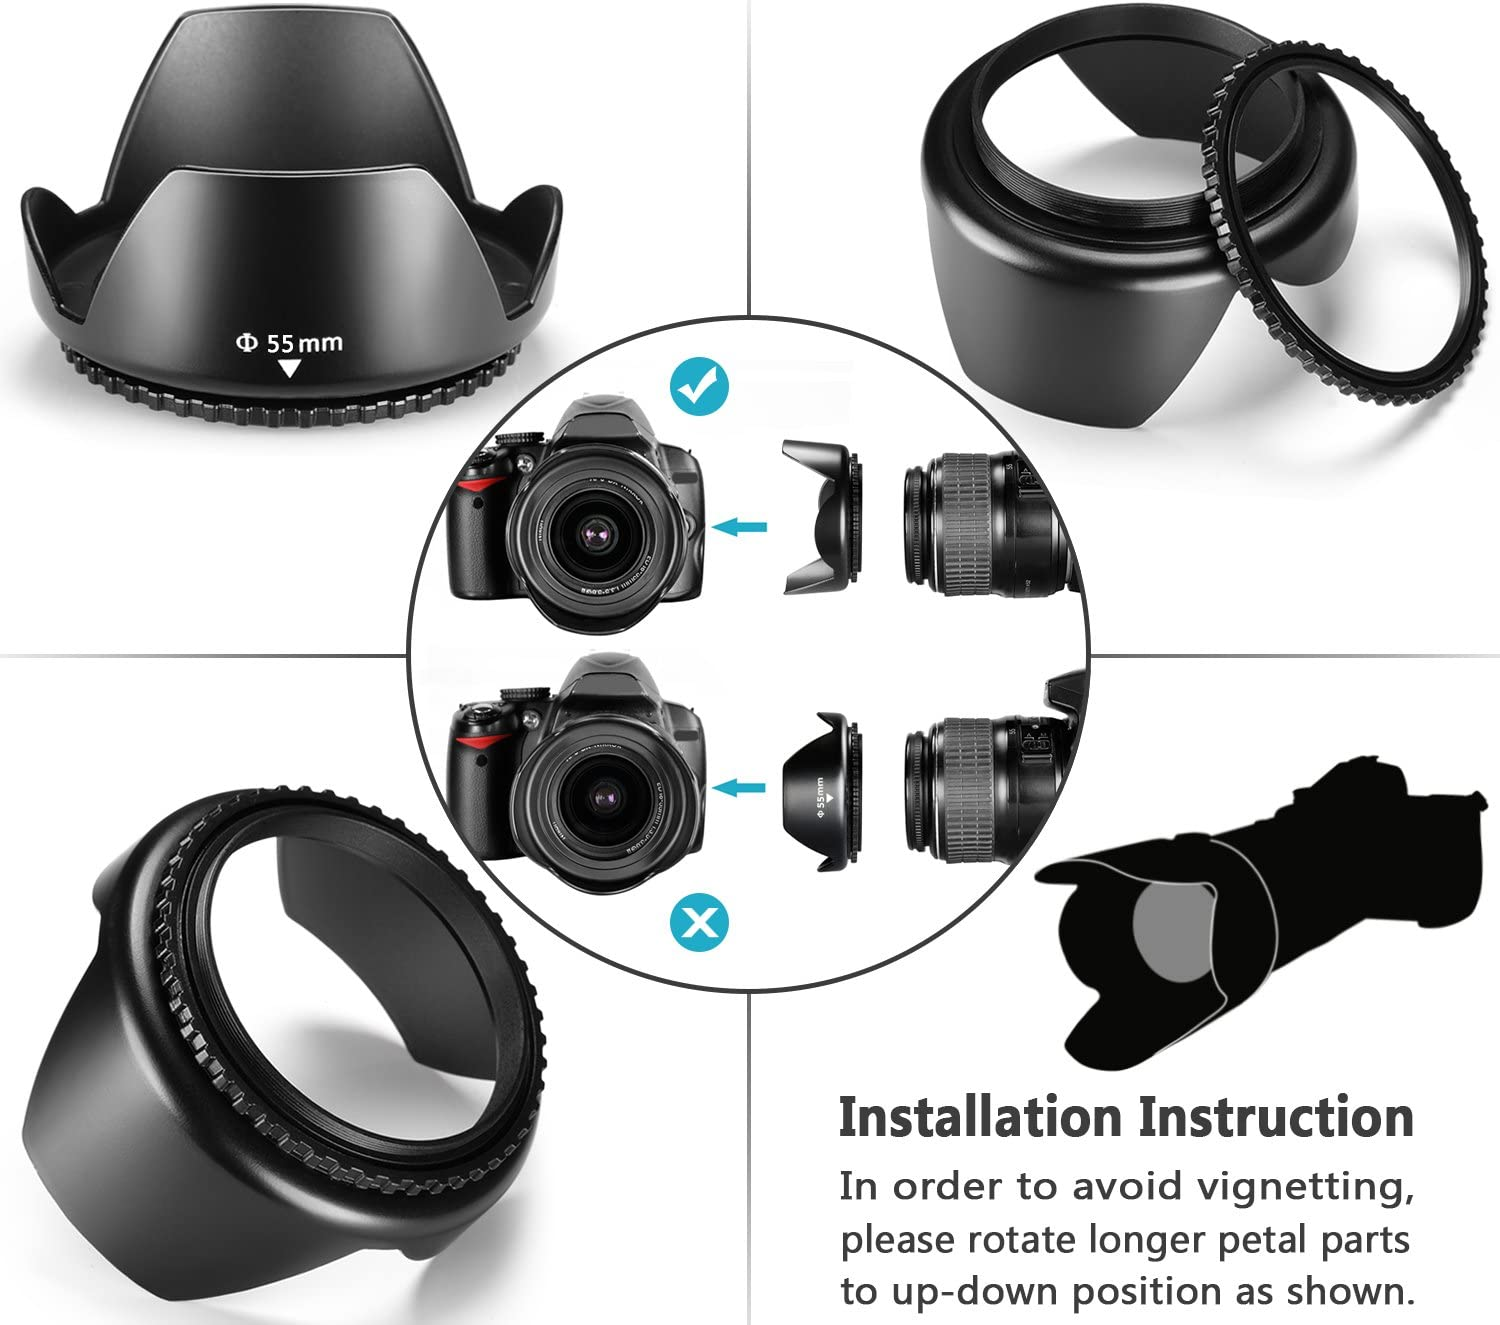 ND2, ND4, ND8 and Sony Alpha A99 A77 A65 K-30 K-50 K-5 K-5 Neewer 62MM Professional UV CPL FLD Lens Filter and ND Neutral Density Filter Accessory Kit for Pentax